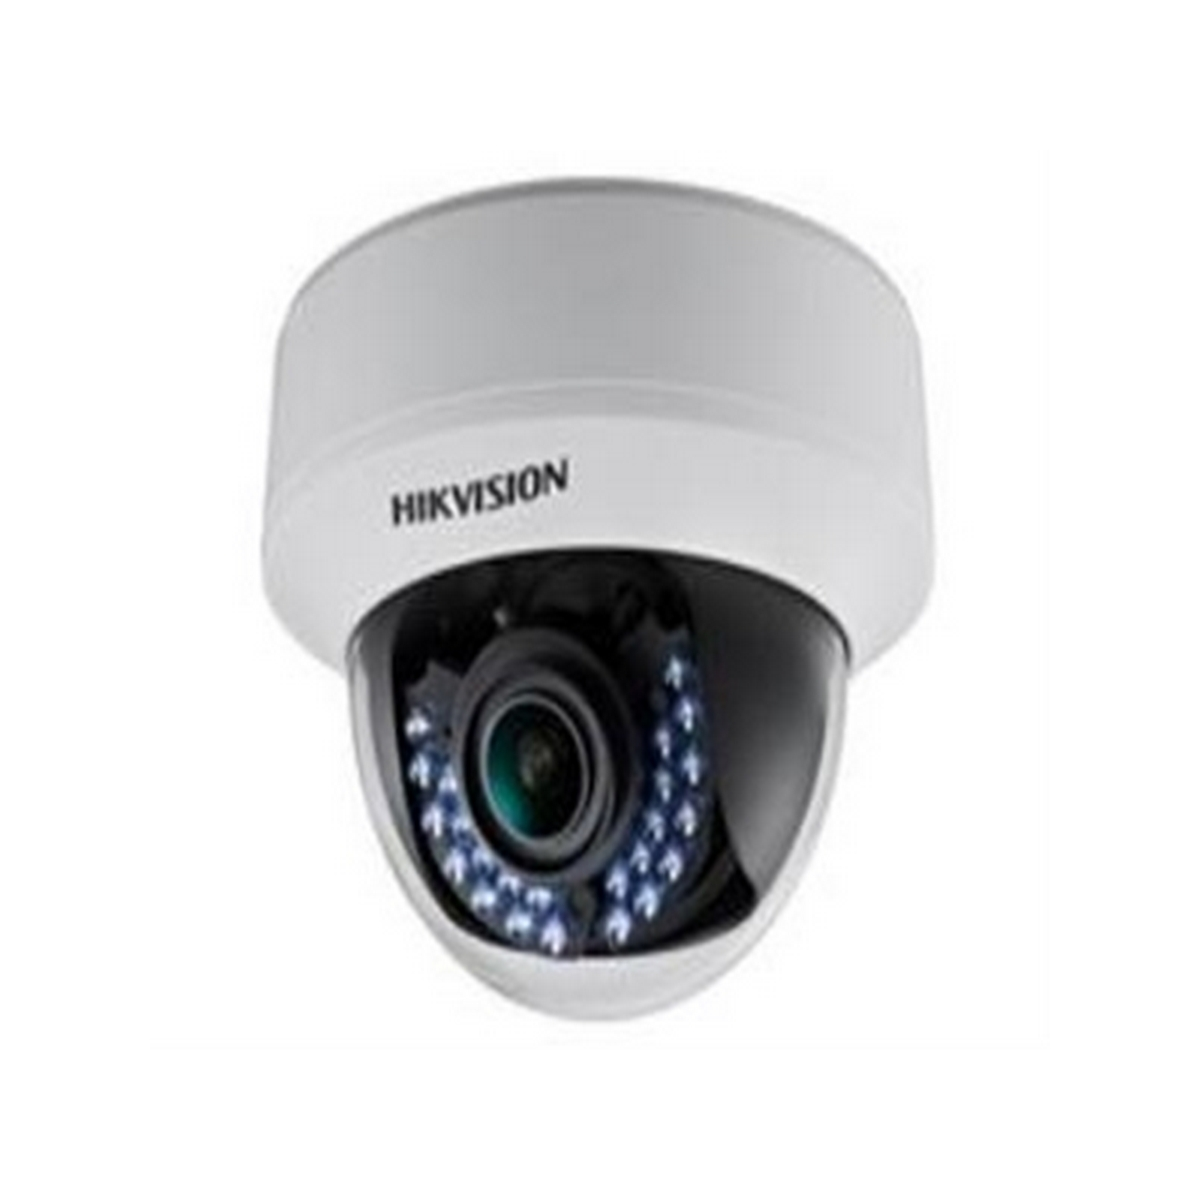 DS-2CE56C5T-AVFIR HIKVISION Indoor IR Dome, HD720p, 2.8-12mm, 30m IR Day/Night, True WDR, Smart IR, UTC Menu, 24VAC/12VDC